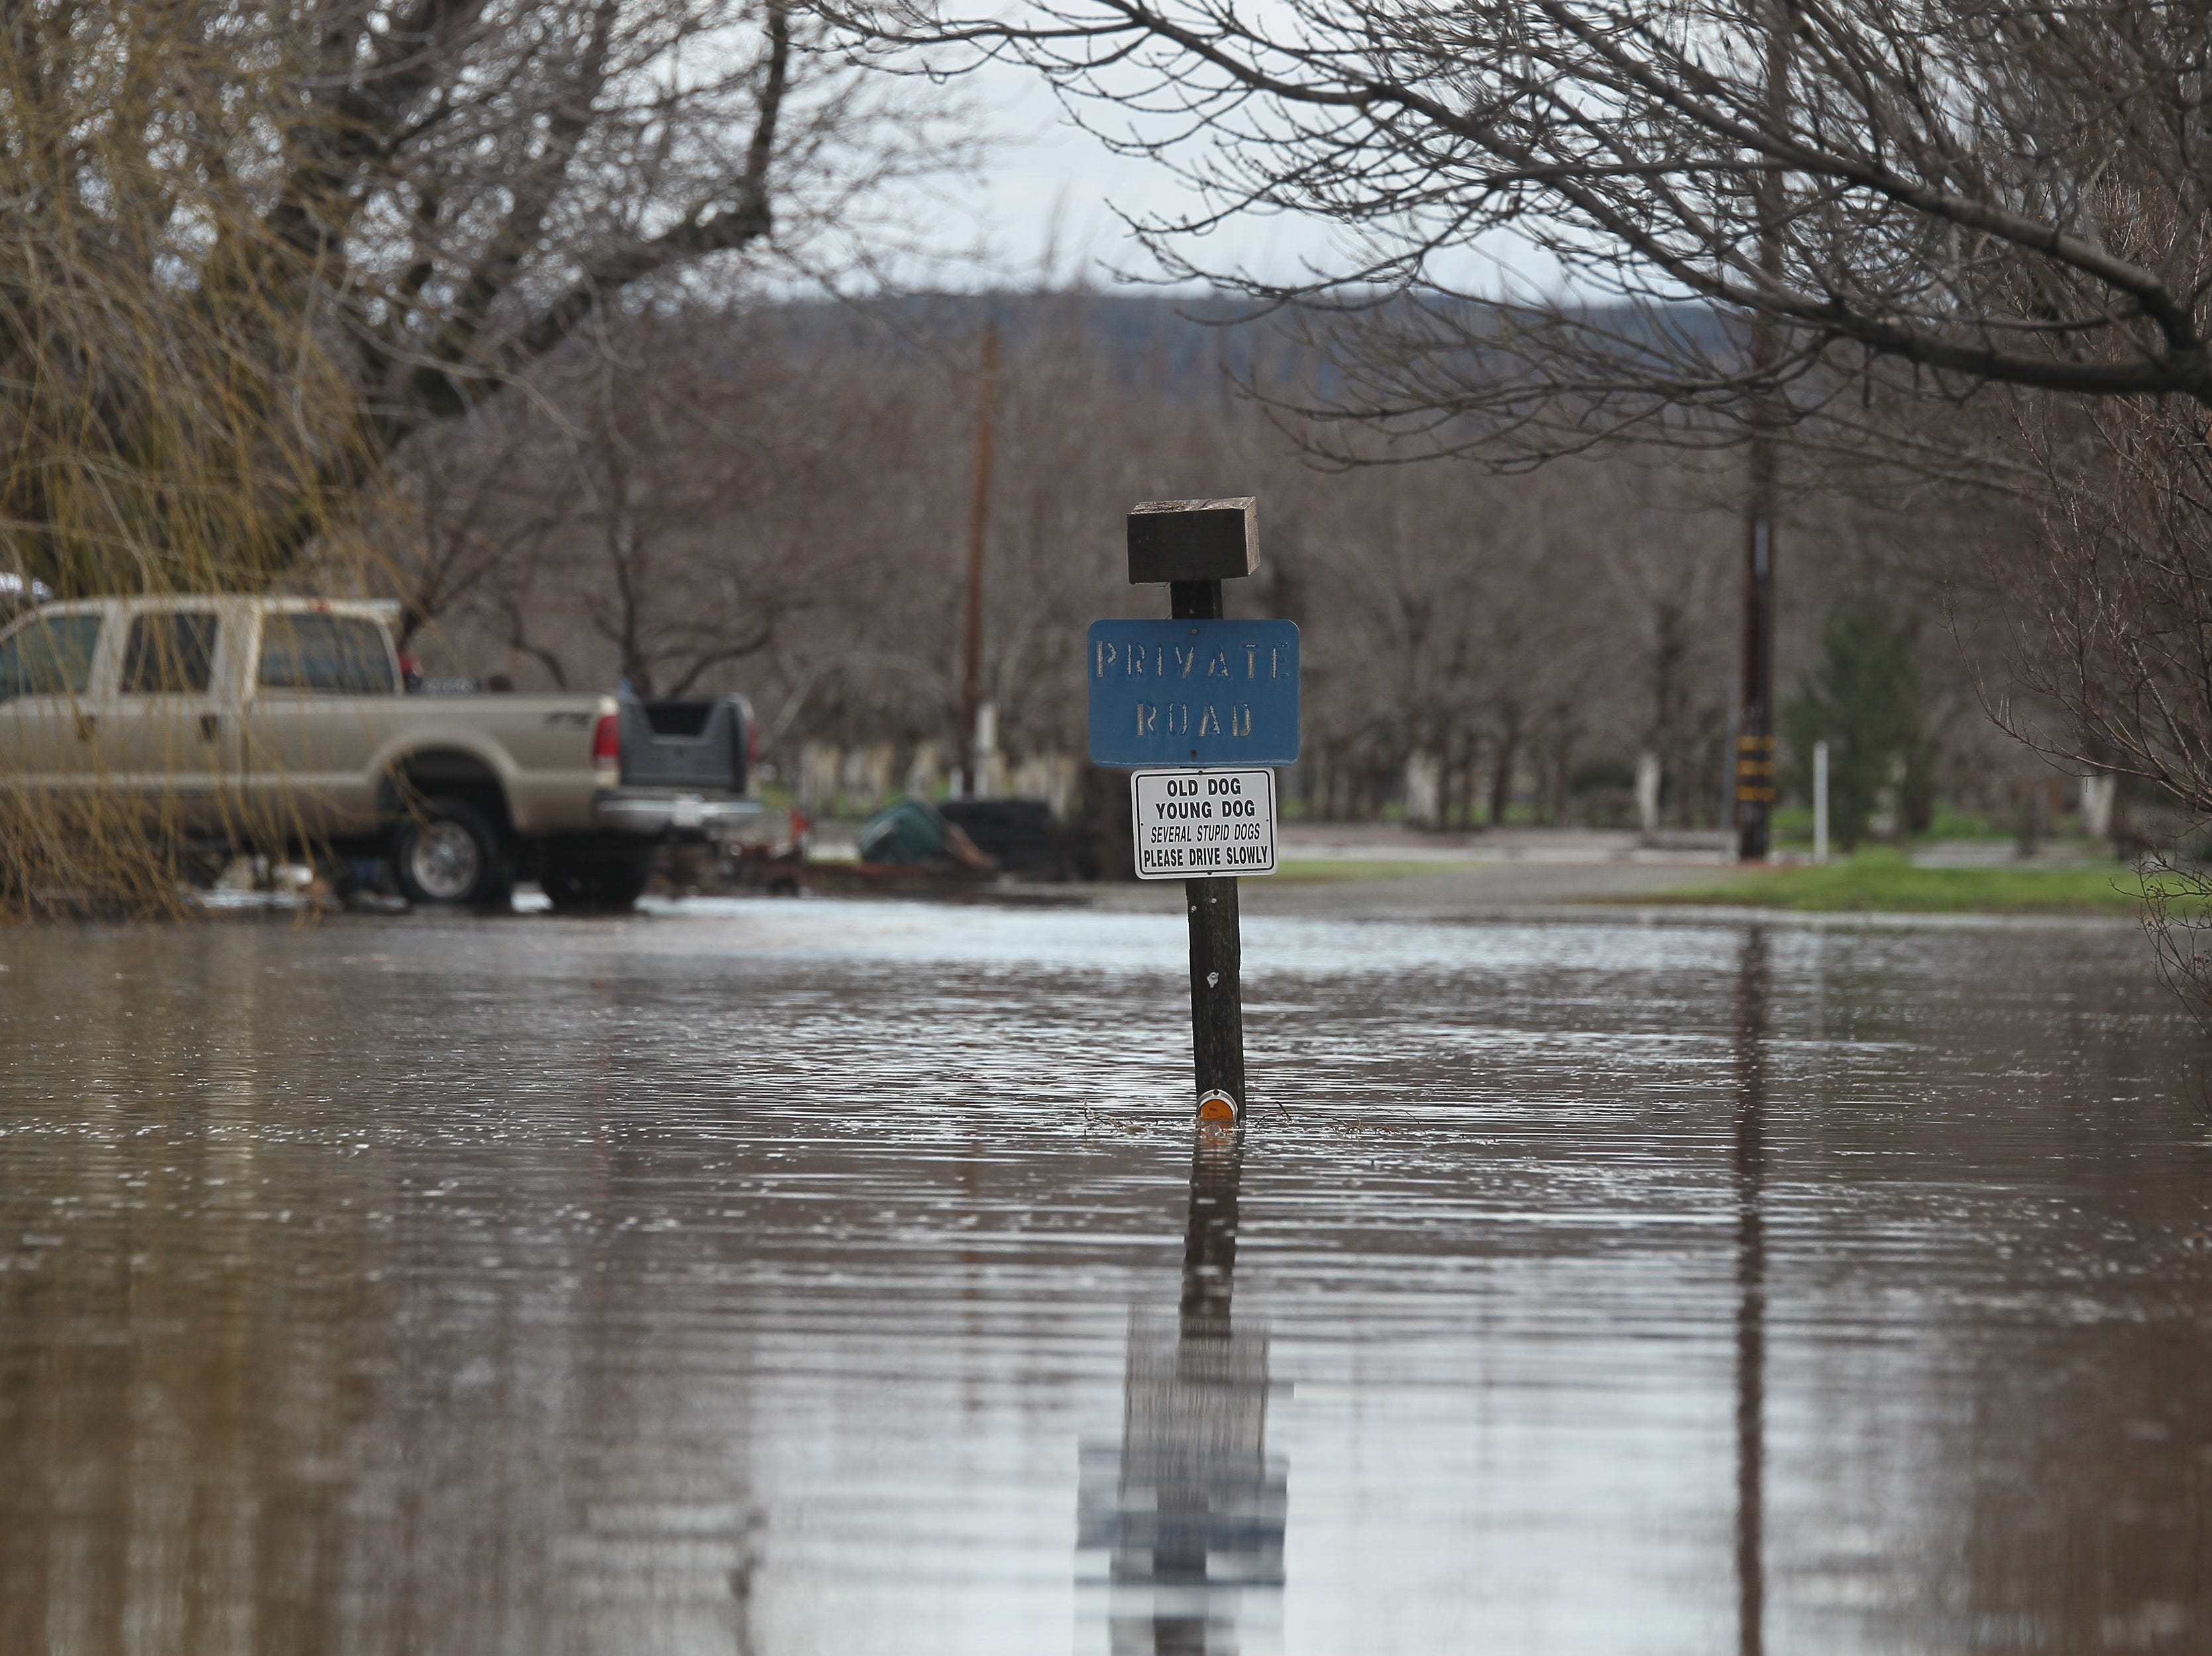 Hwy. 99 was closed in Dairyville on Thursday morning due to the flooding.